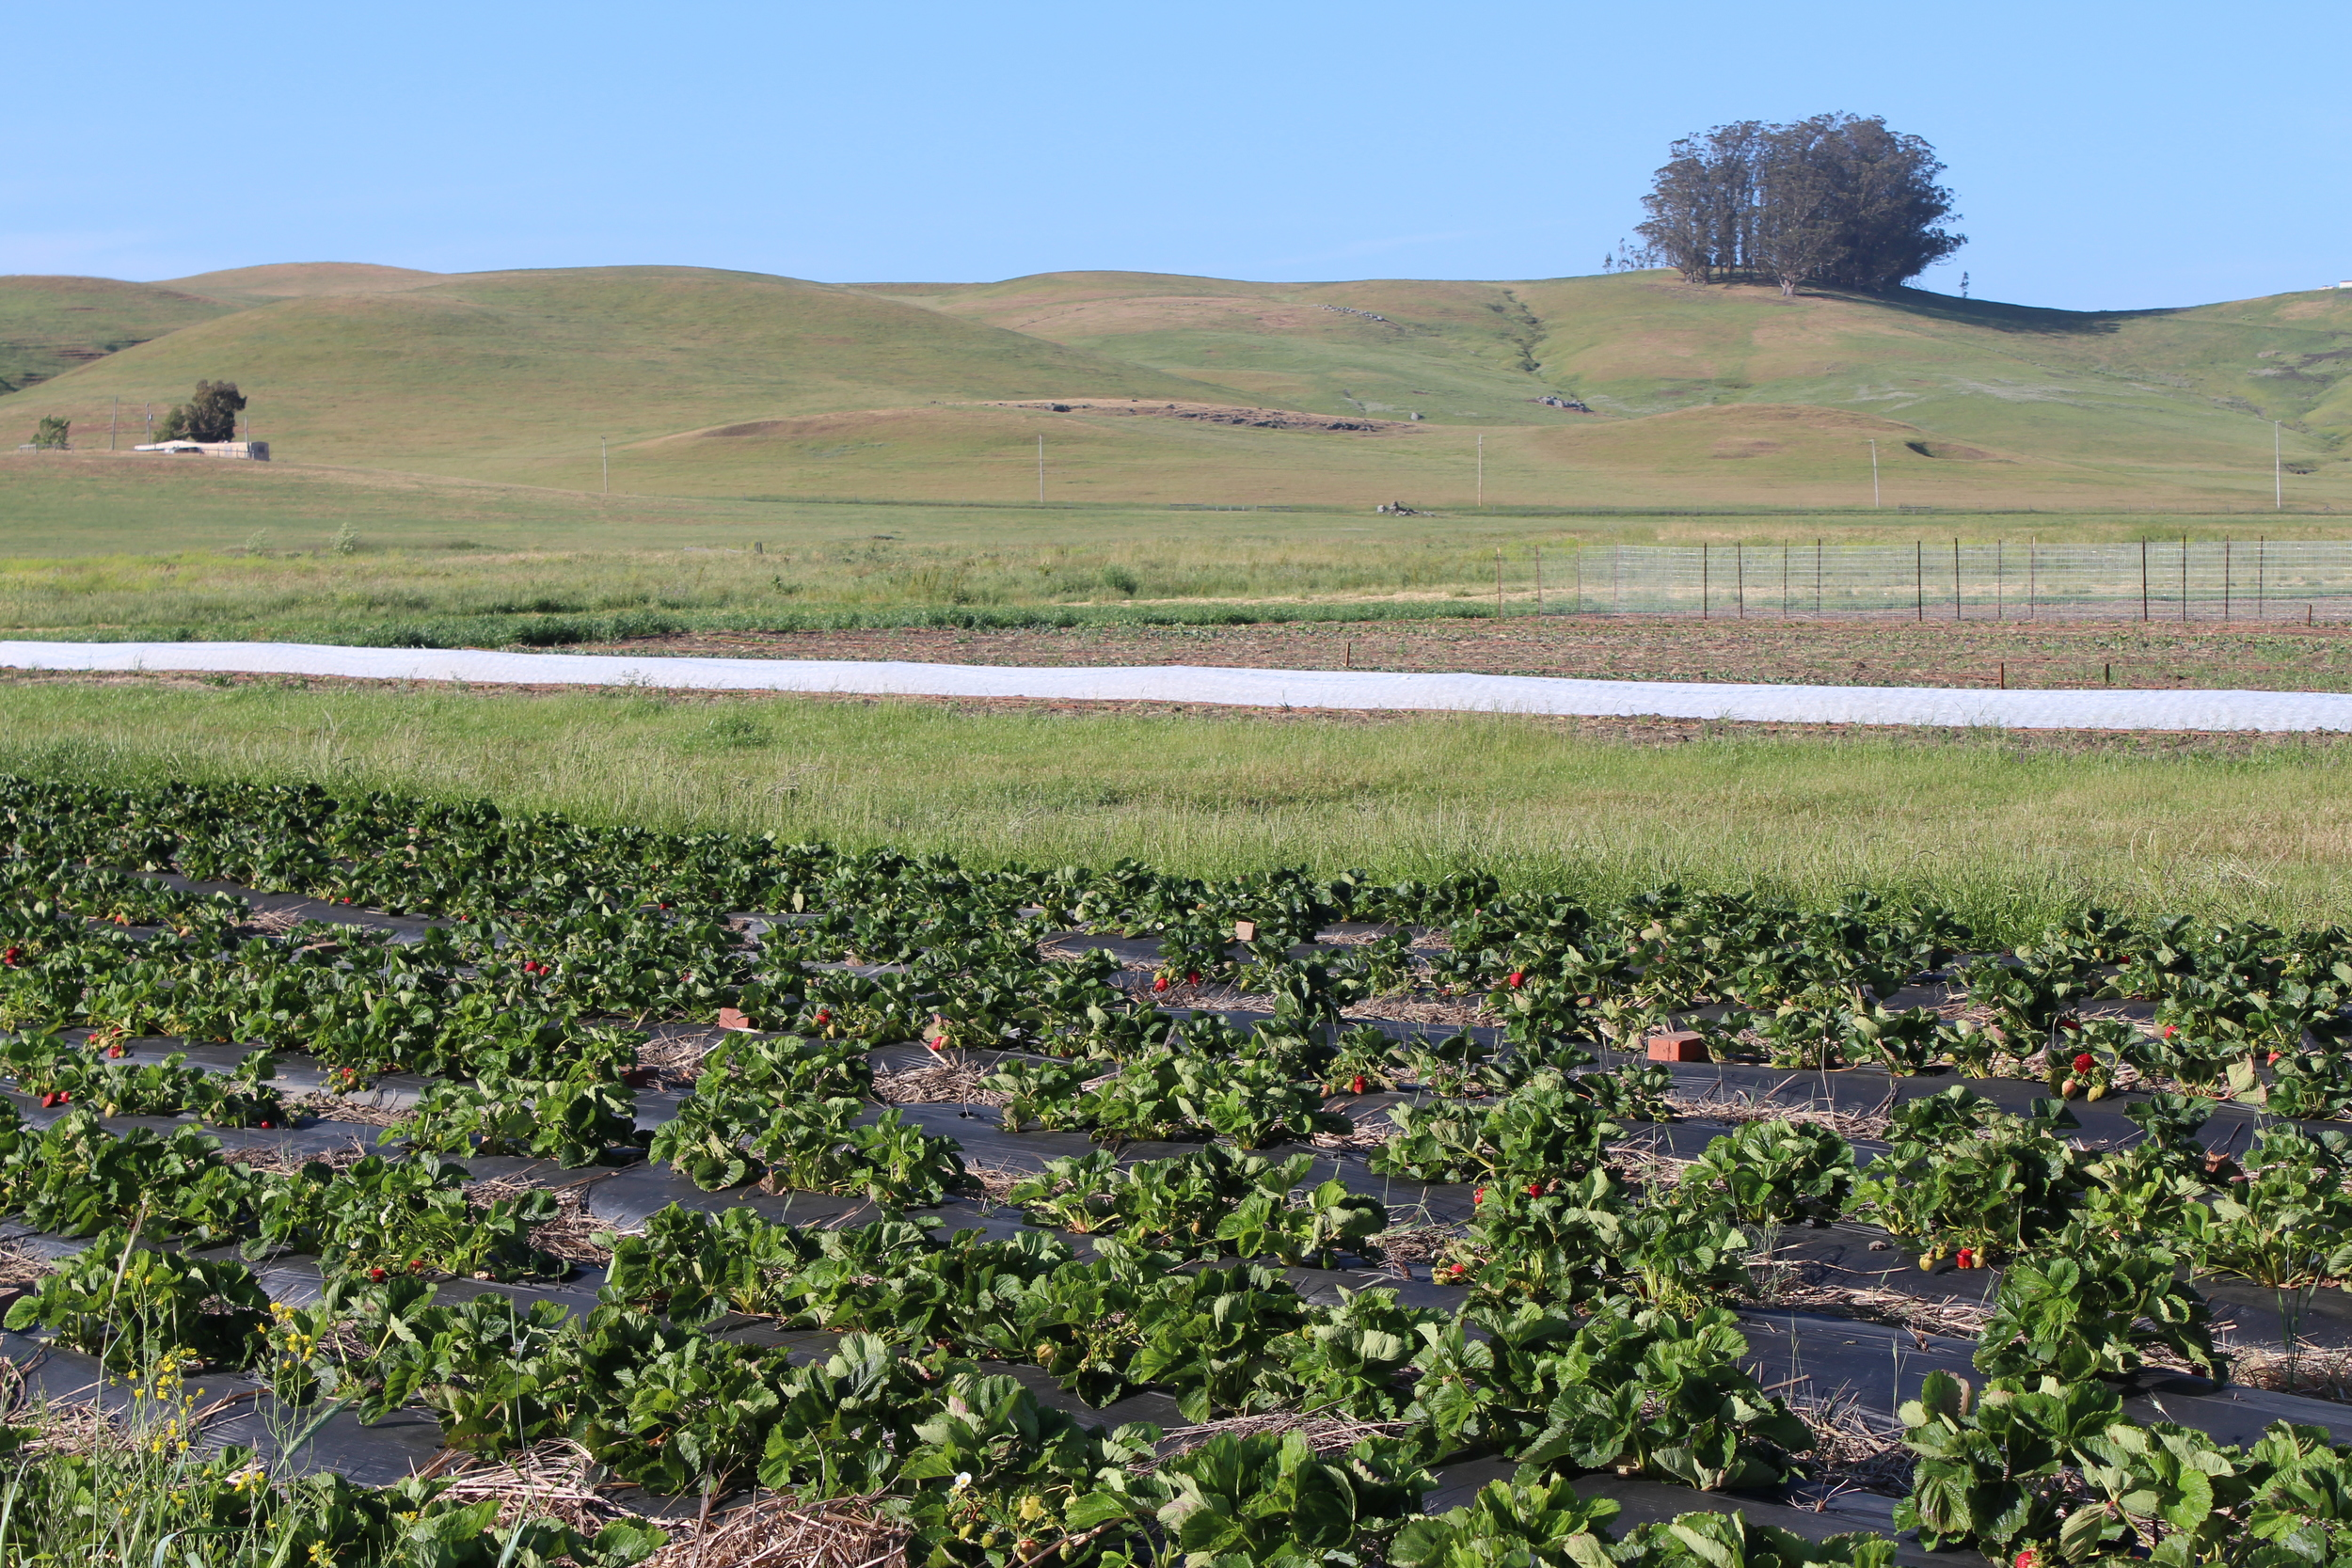 The growing fields with strawberries in the front.